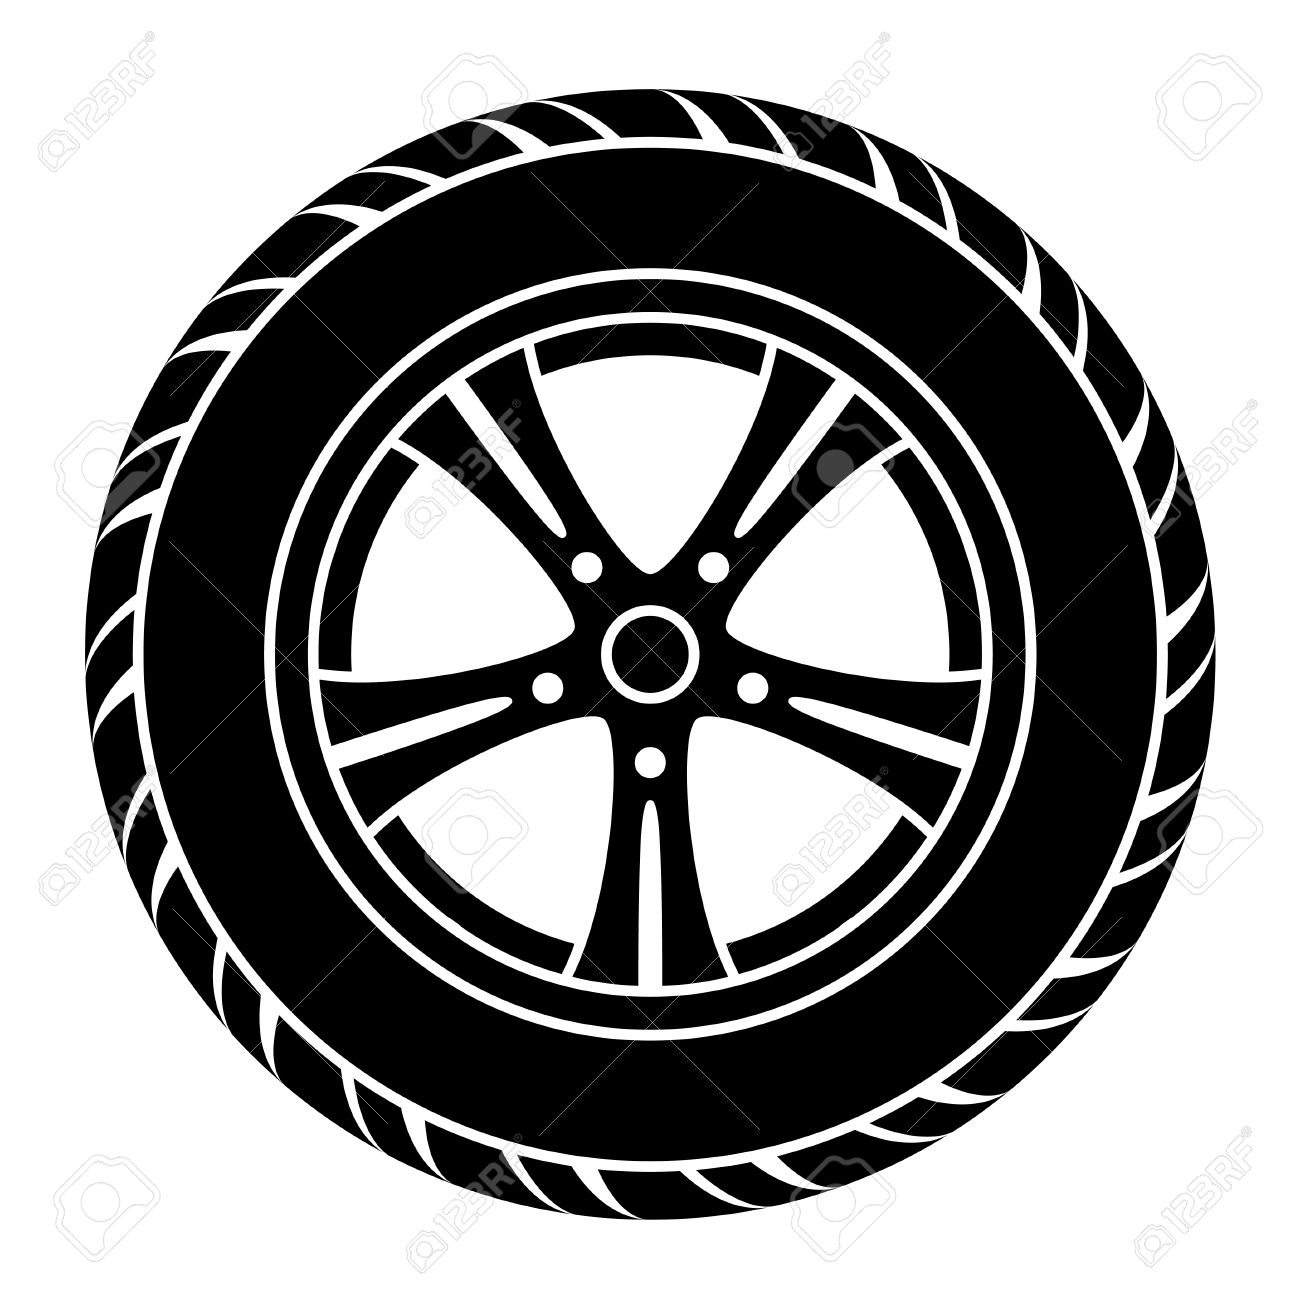 Car with tires clipart black and white clipart library library Vector car wheel black white symbol » Clipart Station clipart library library